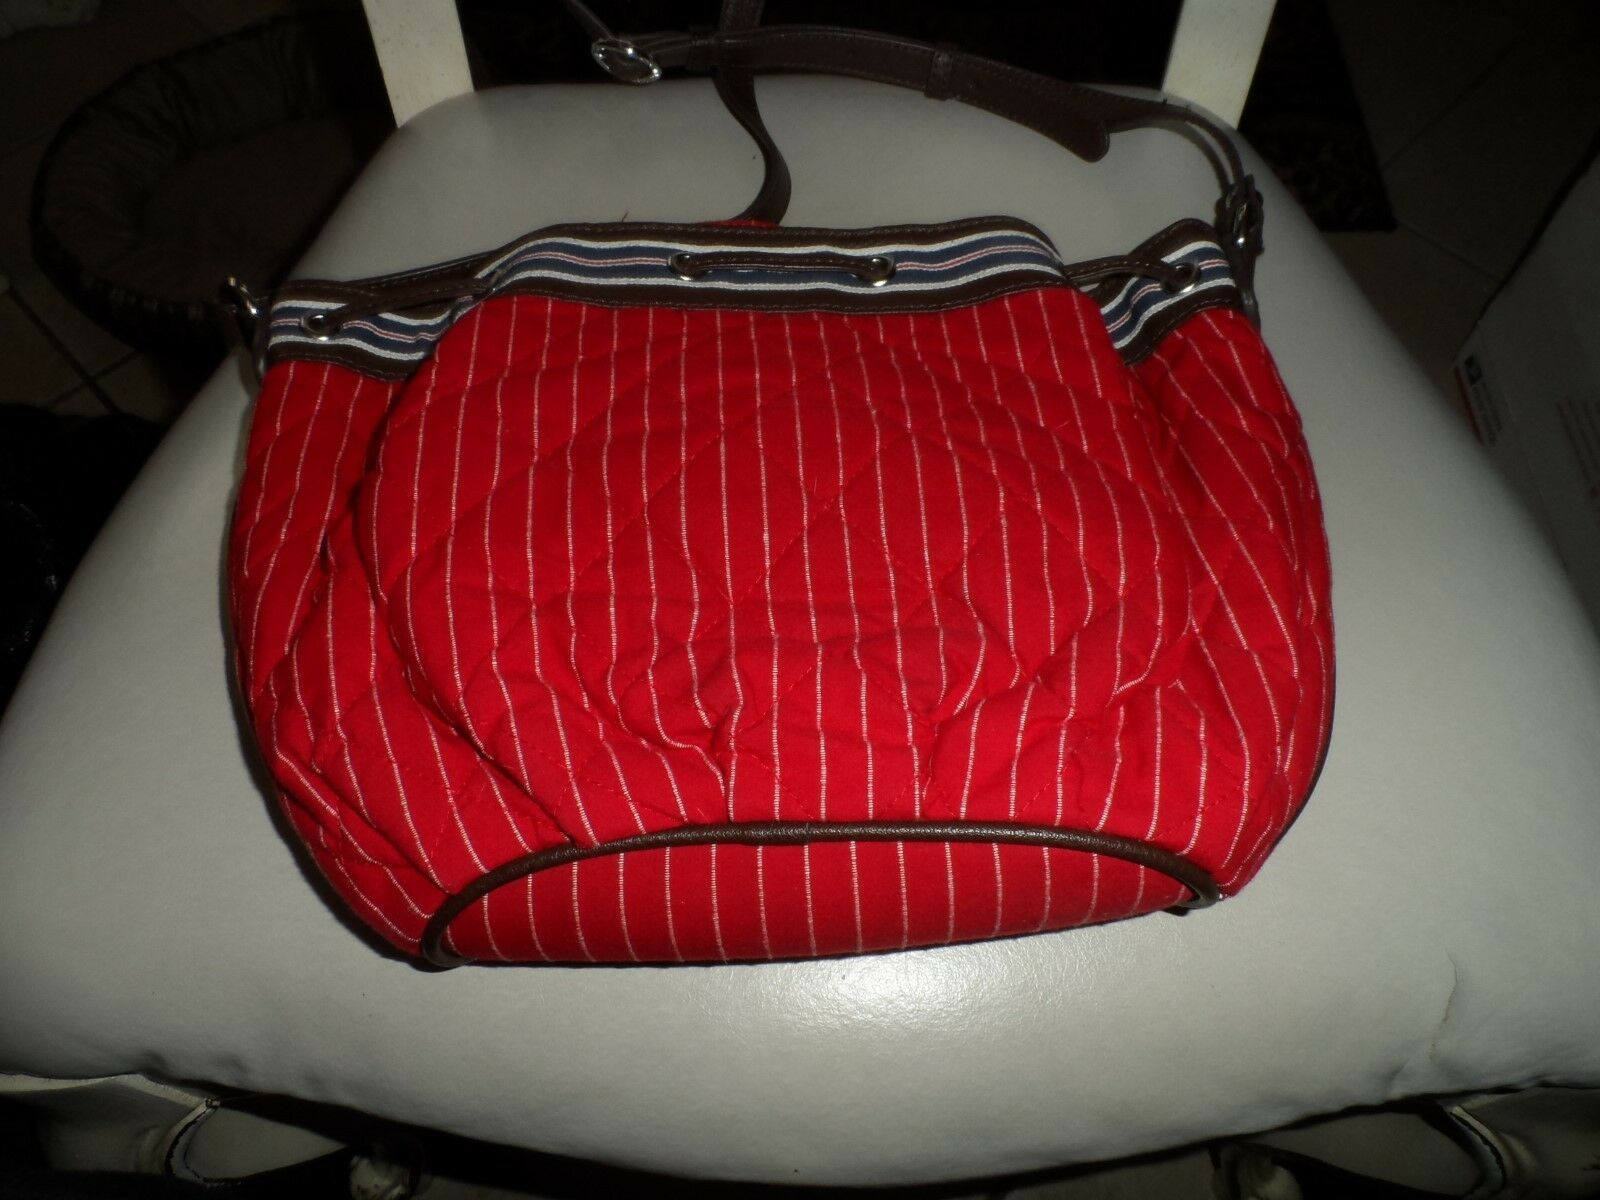 Vera Bradley Hobo shoulder bag and wallet in Red and White Seaport Stripe